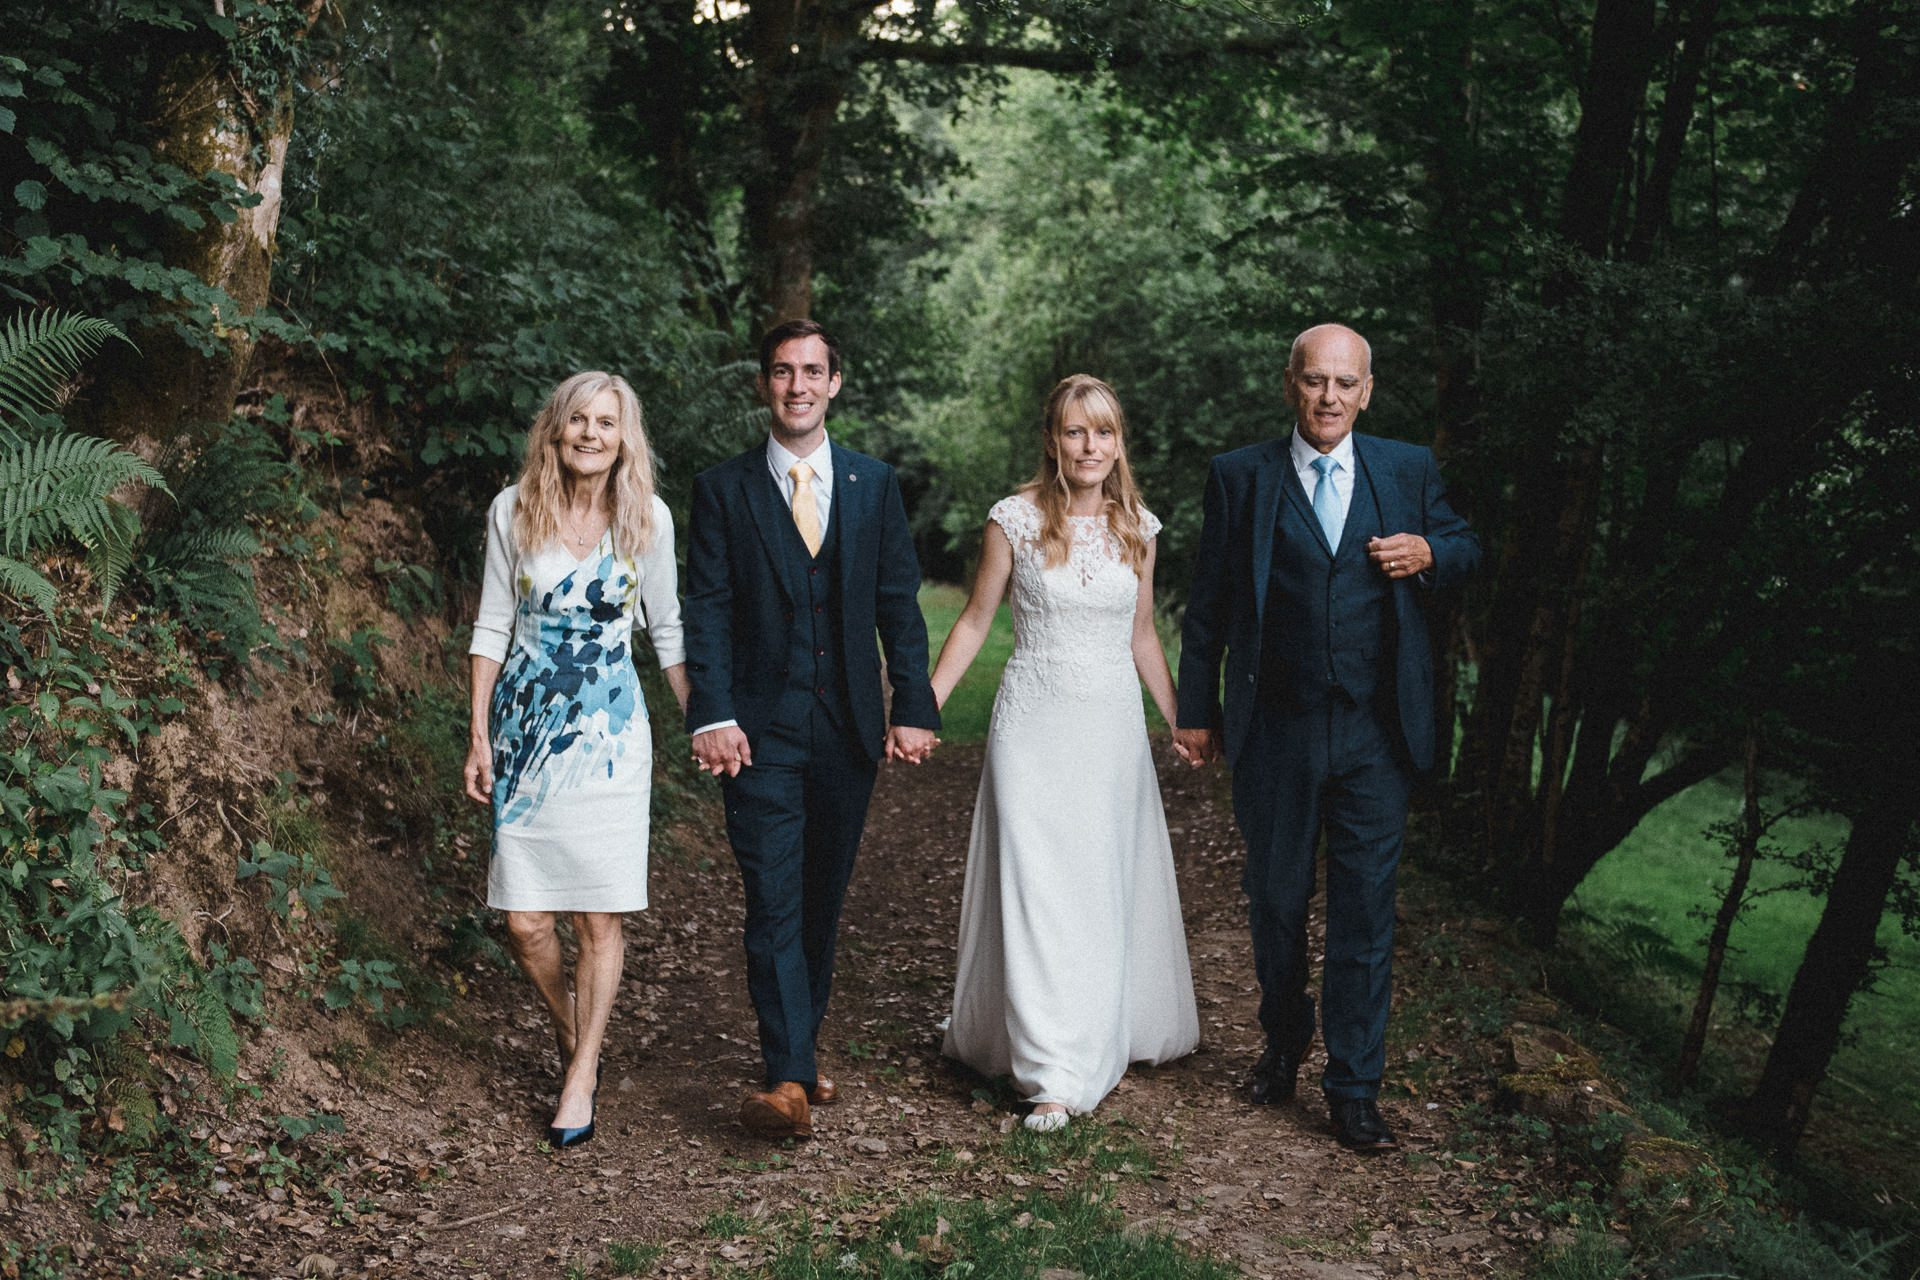 0015-DEVON-SOMERSET-WEDDING-PHOTOGRAPHER-0046-BEST-OF-2019-LOUISE-MAY-DEVON-SOMERSET-WEDDING-PHOTOGRAPHY-LMP_2786